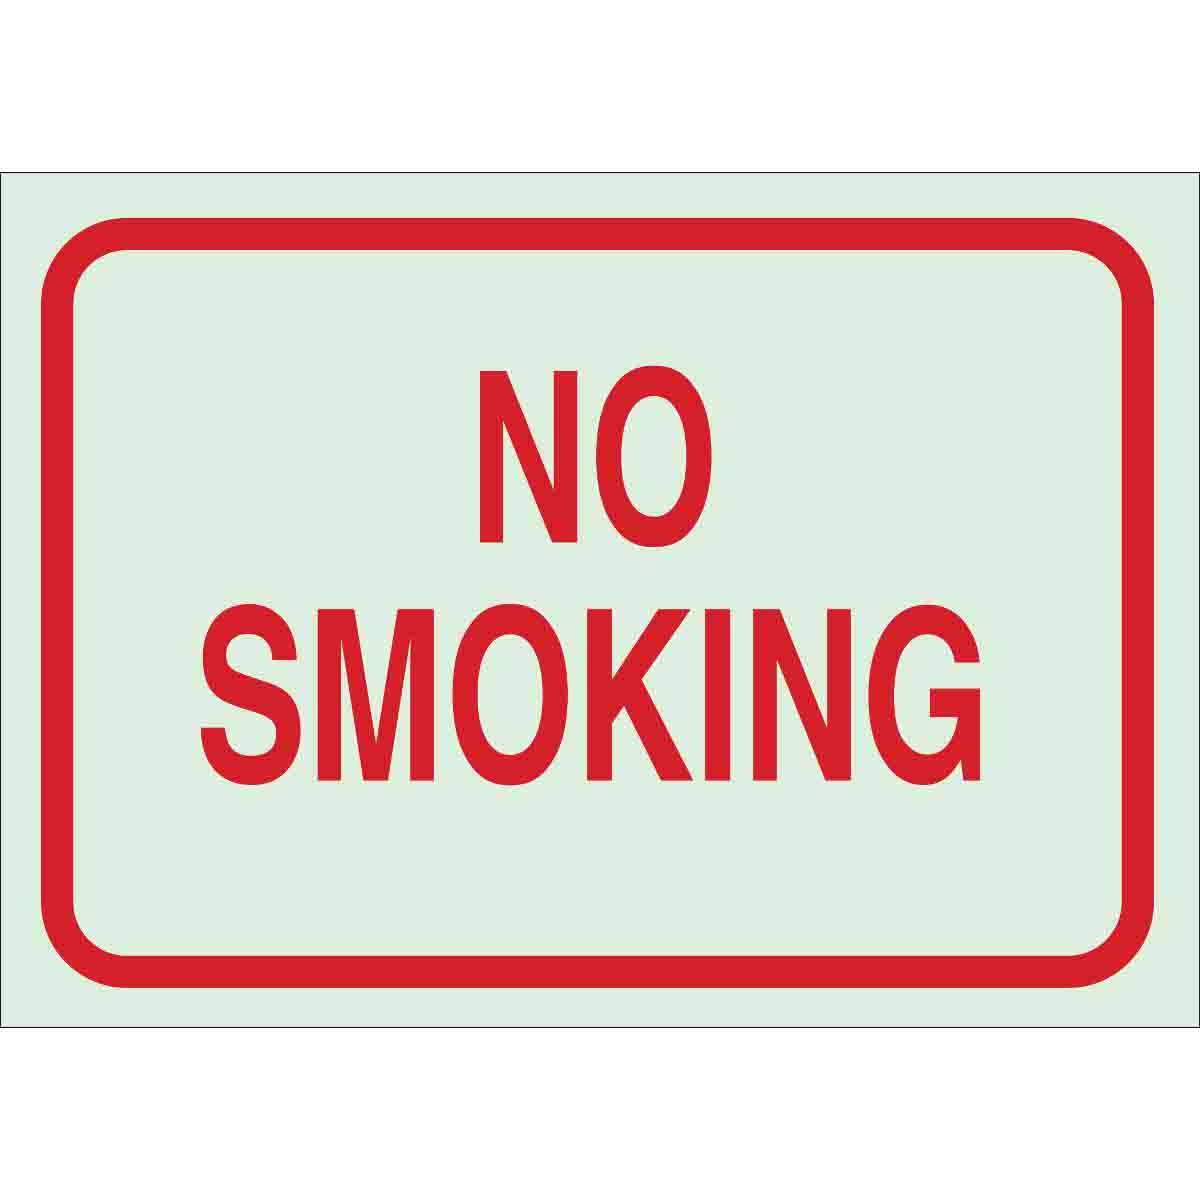 Brady® BradyGlo™ 80248 Rectangular No Smoking Sign, 7 in H x 10 in W, Red on Glow, B-324 Polyester, Self-Adhesive Mount